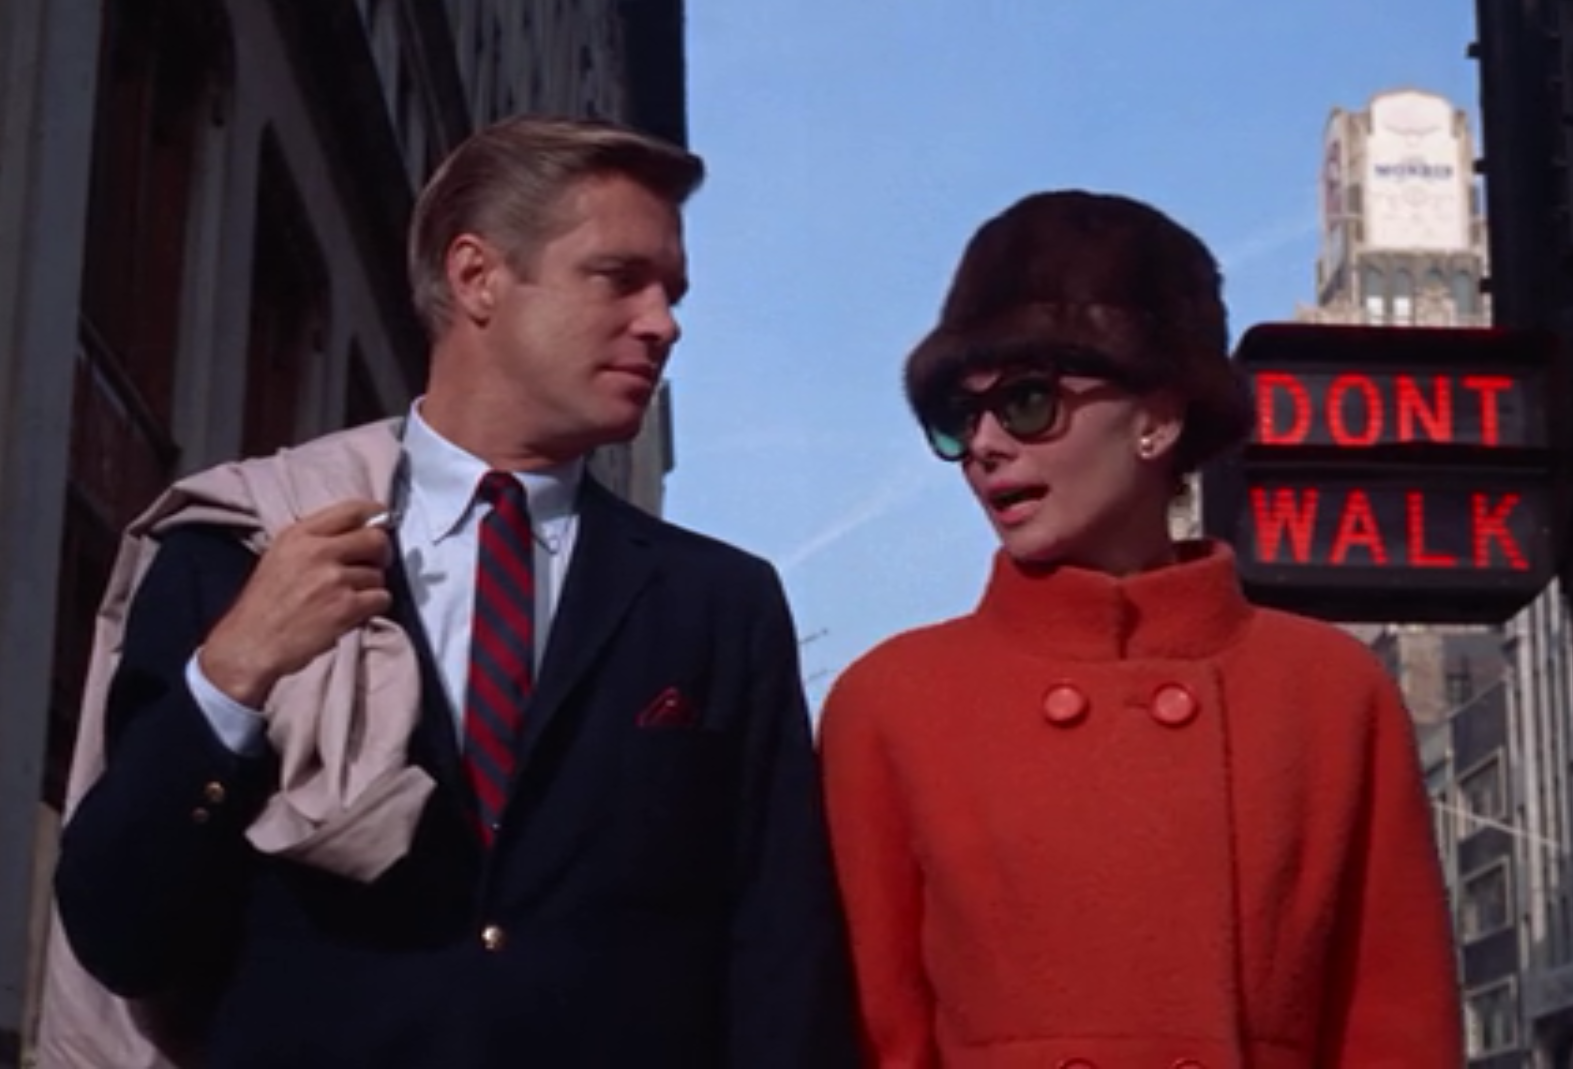 Breakfast at Tiffany's 1961 starring Audrey Hepburn and George Peppard (1960's FILM FASHION)